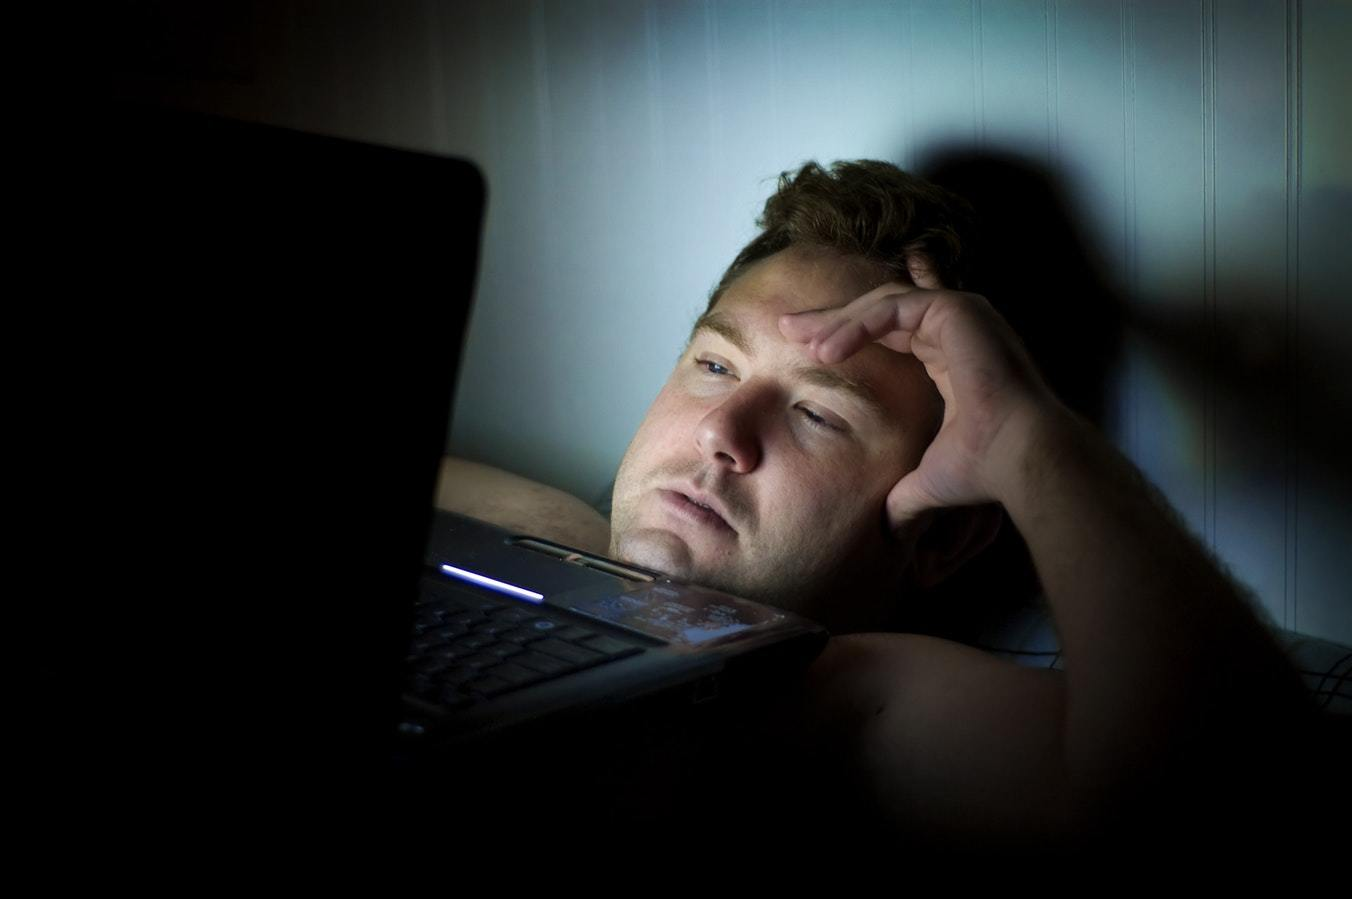 man lying in bed staring at laptop and looking worried